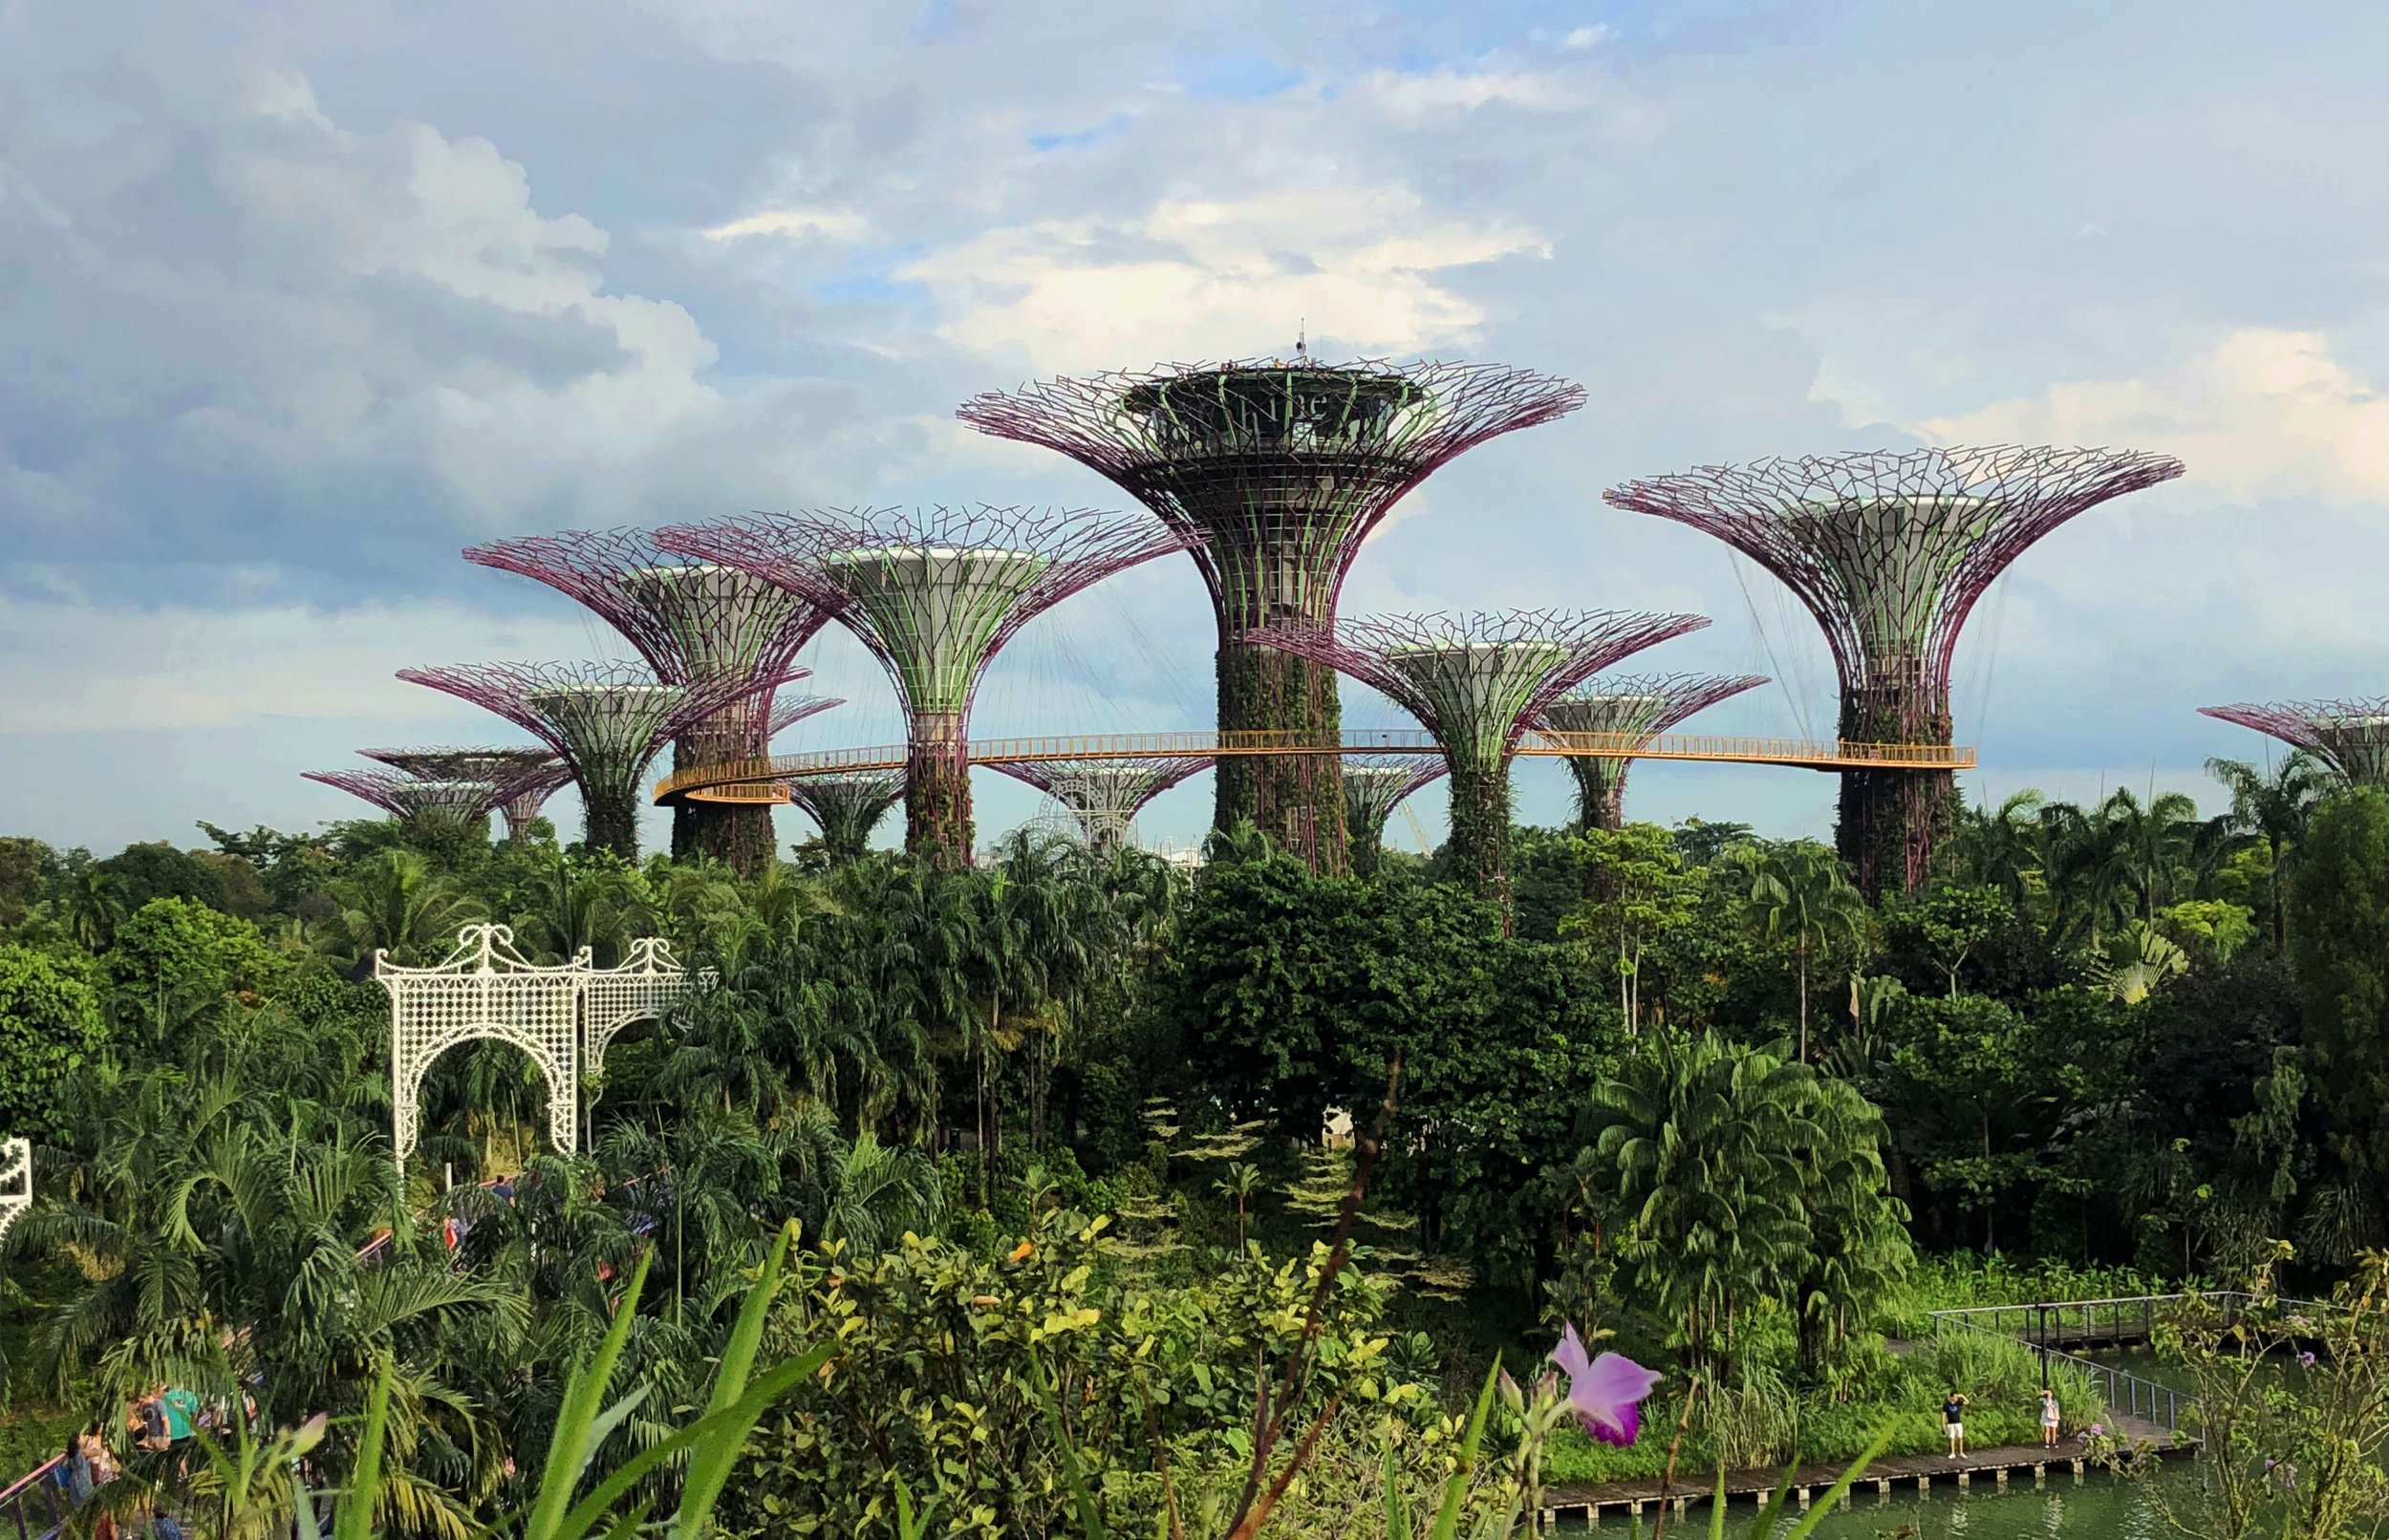 GARDENS BY THE BAY Tour - Suitable for all nature lovers, stand in awe of the myriad of flowers and plants at Singapore's Gardens By The Bay. Visit the tree that Prince William and Princess Katherine planted in 2012 and explore the various conservatories.